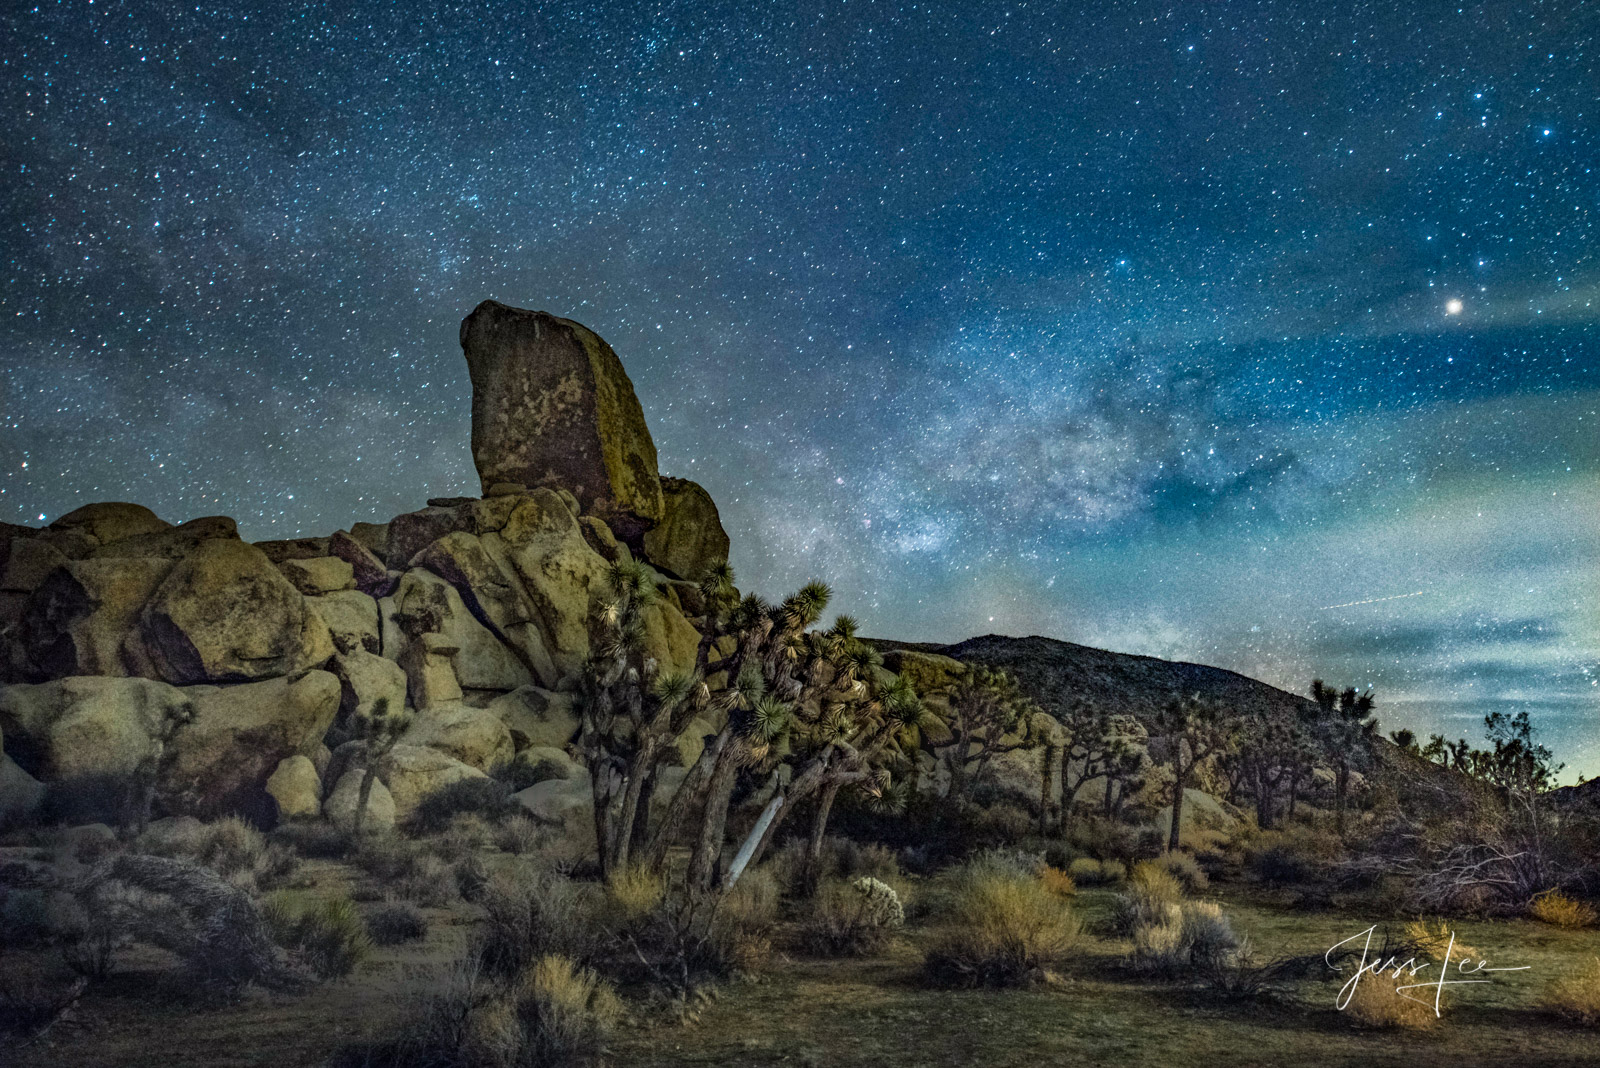 Limited Edition of 50 Exclusive high-resolution Museum Quality Fine Art Prints of the Night Sky at the Mojave Desert. Photos...